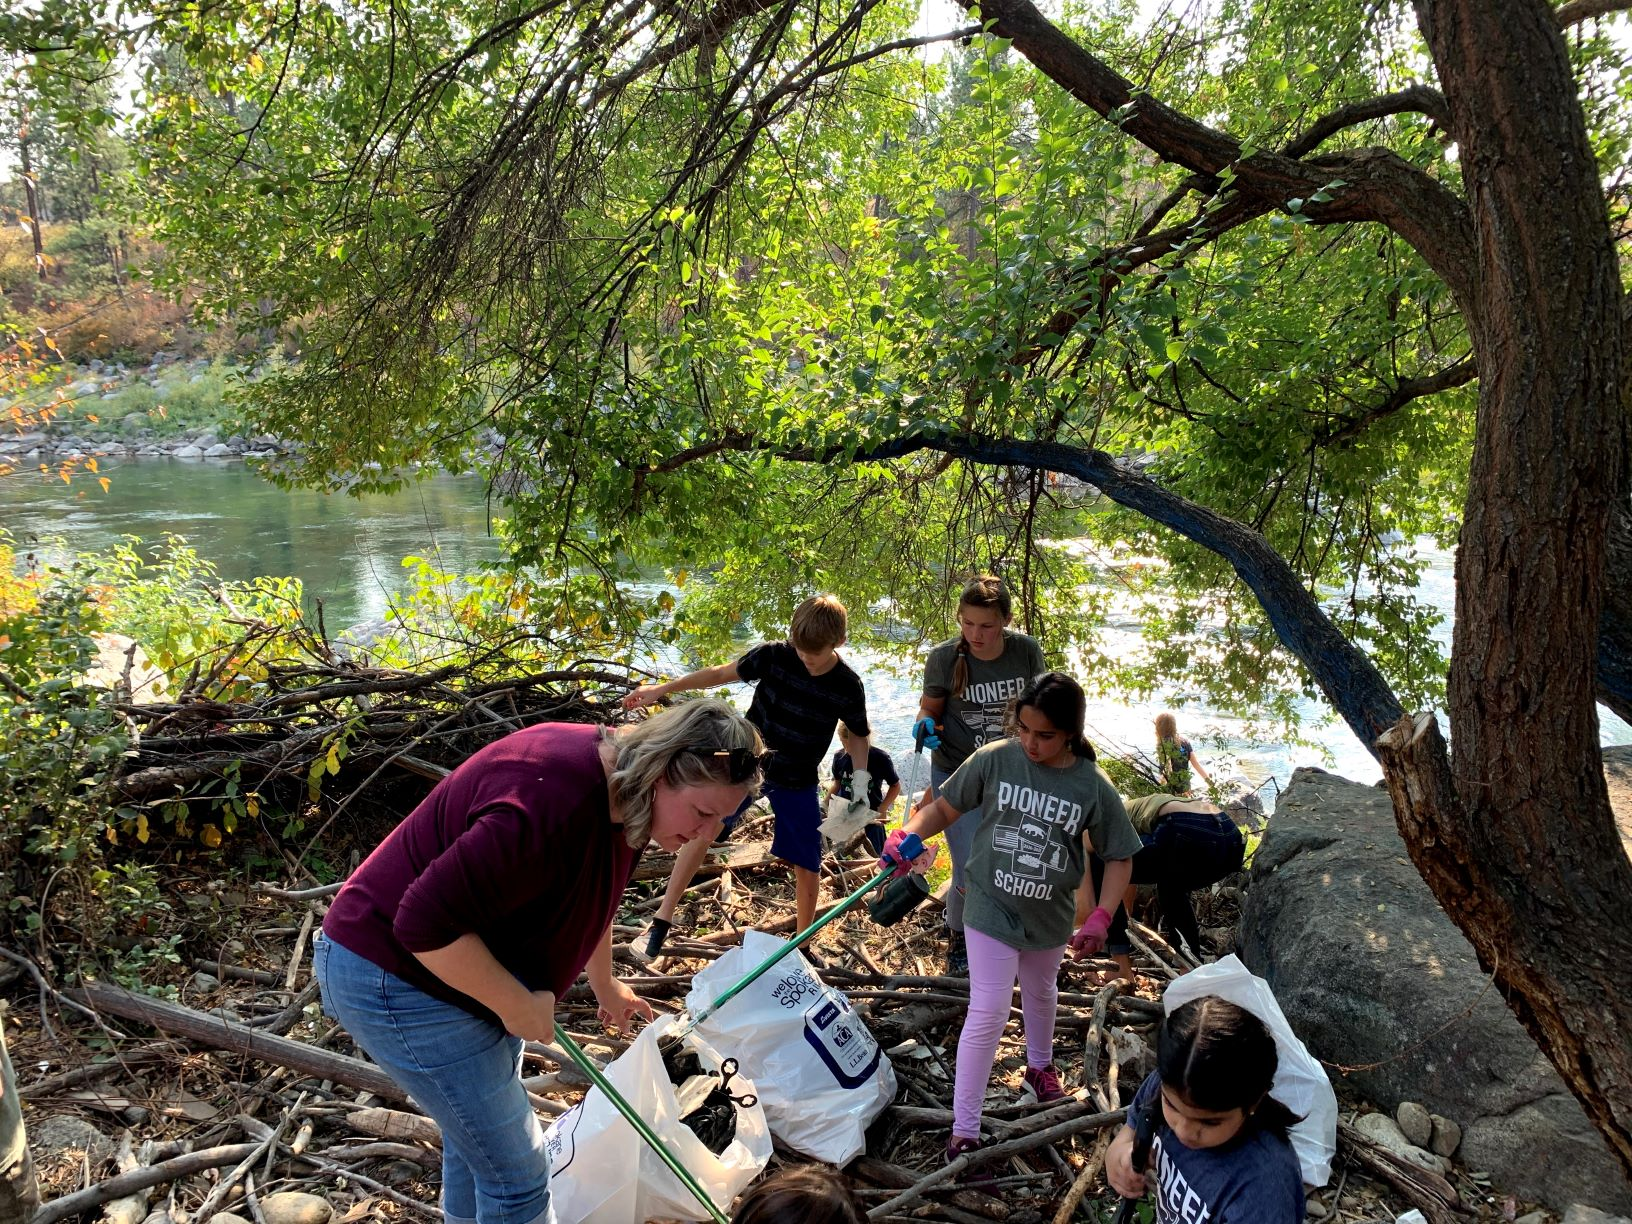 Volunteers, adults and youth wearing Pioneer School t-shirts, pick up garbage wearing gloves and using pick-up tools along the bank of the Spokane River.